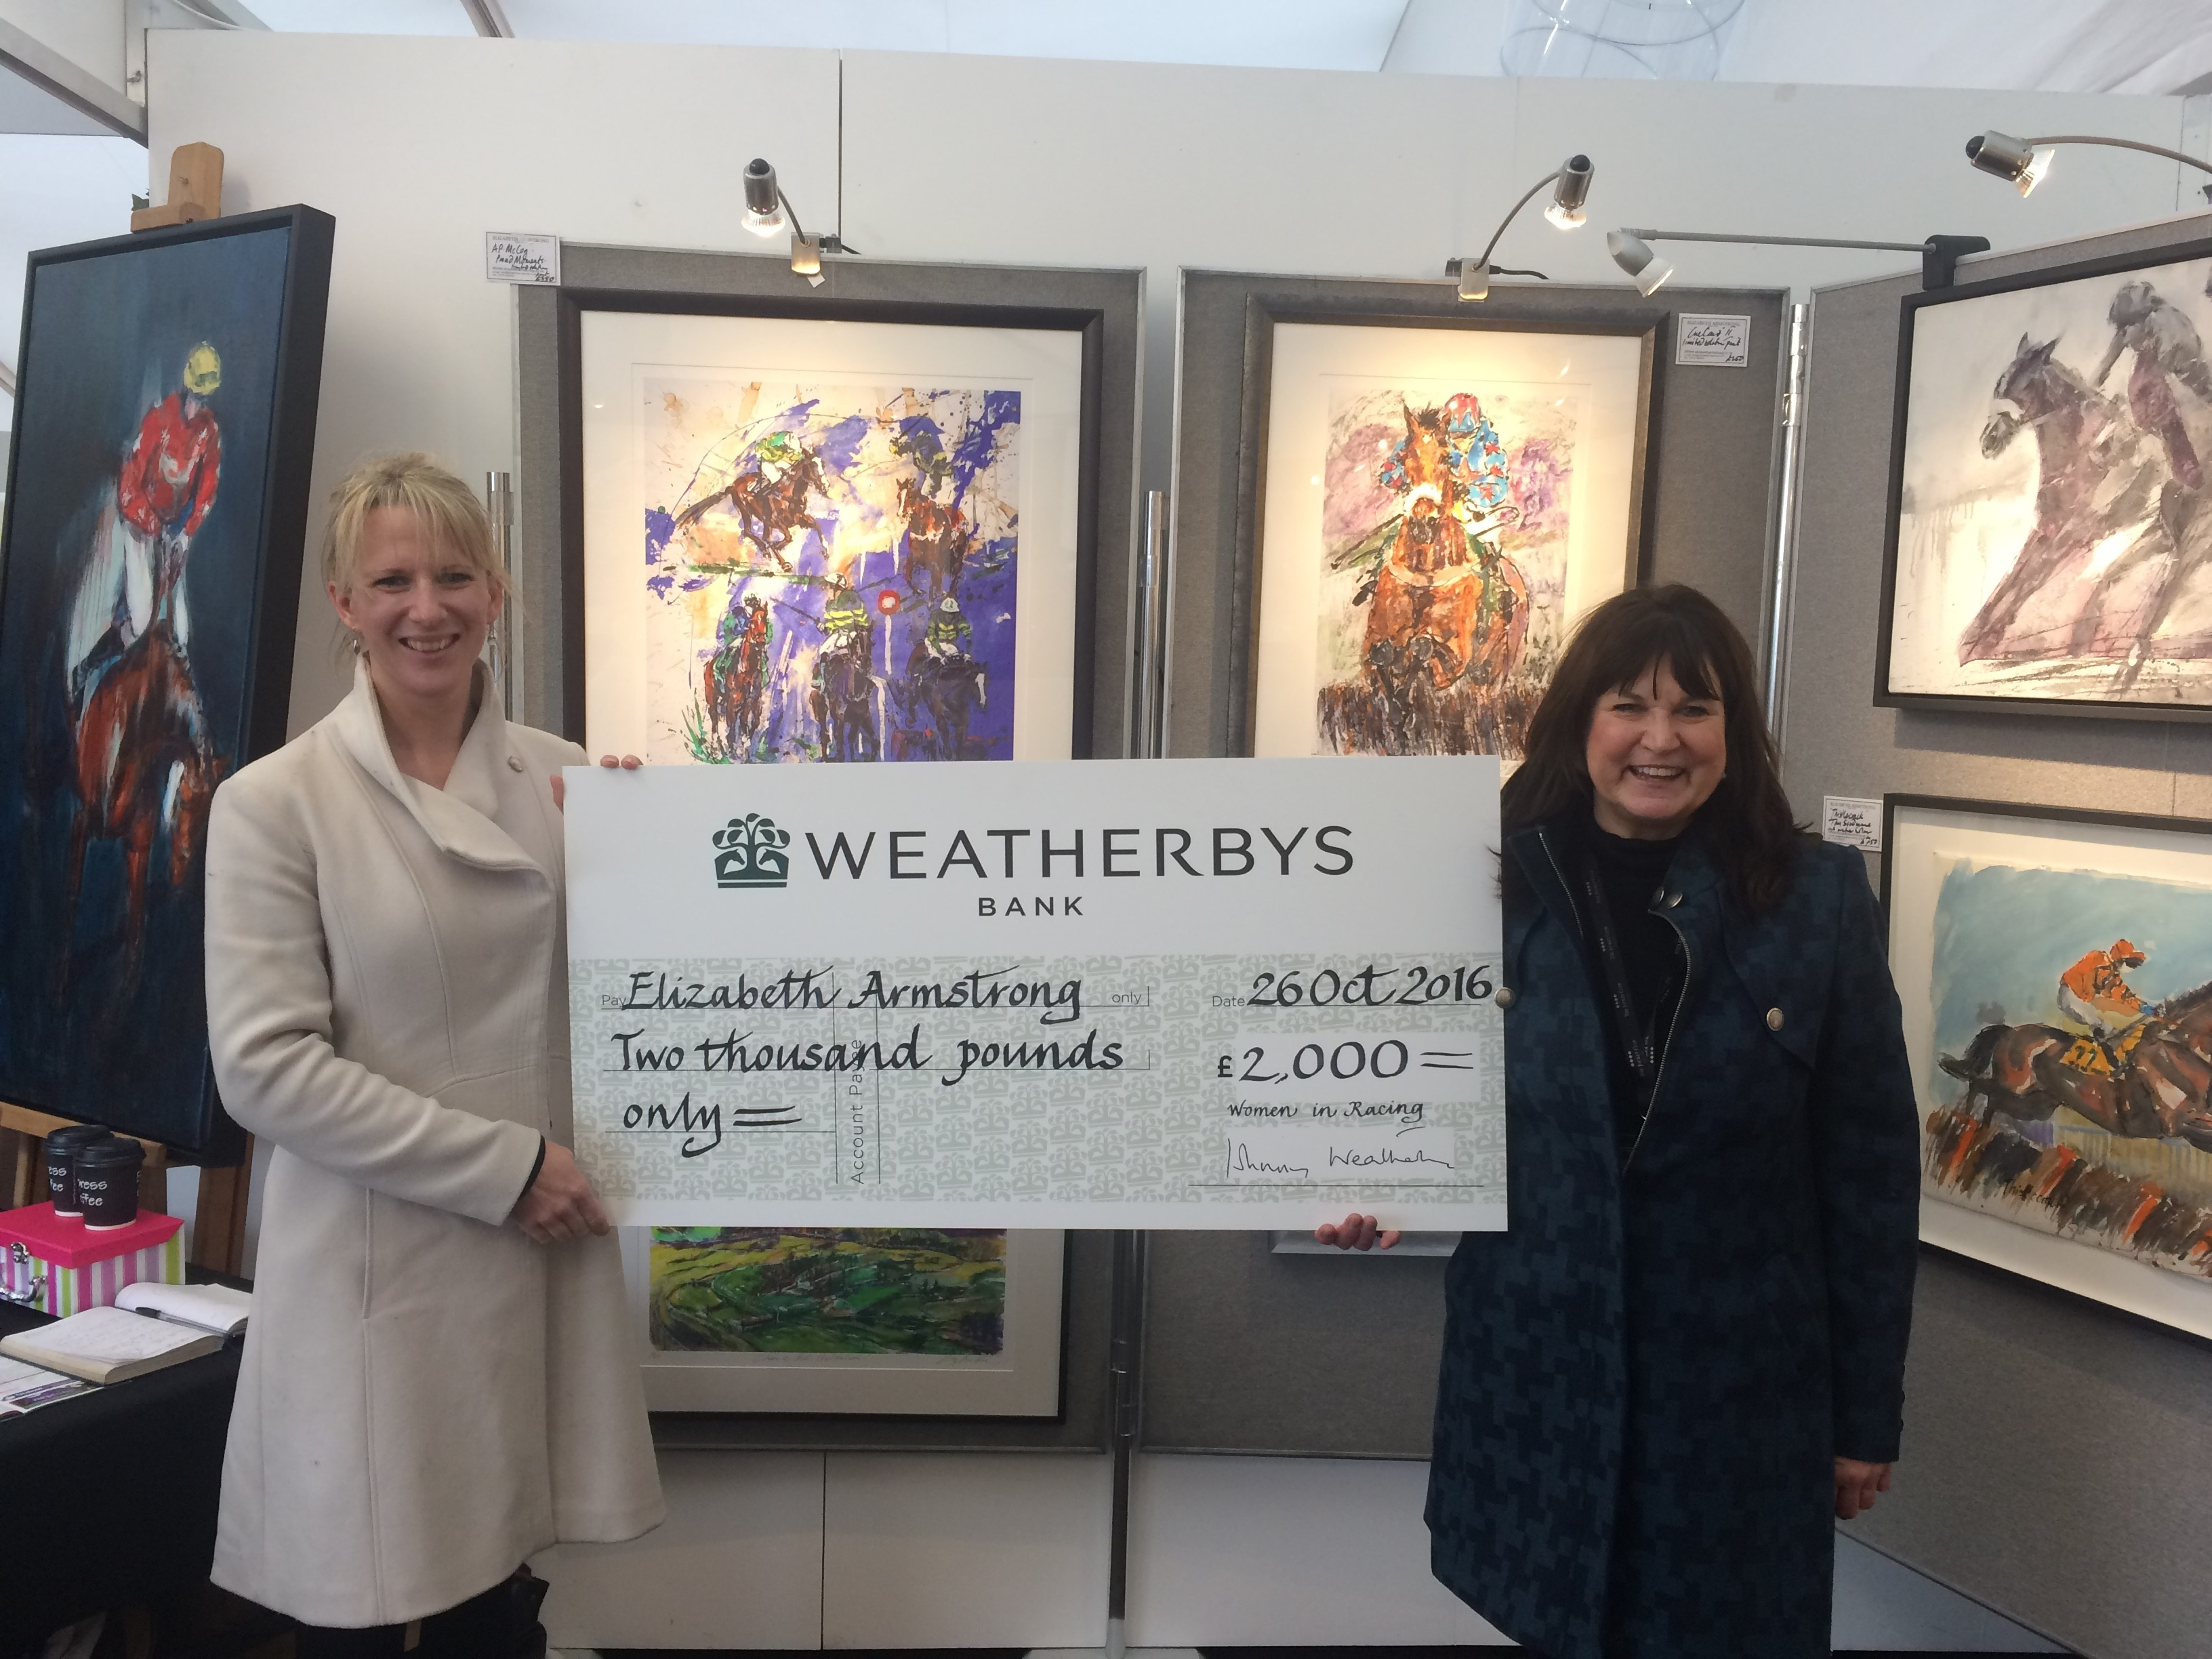 WiR committee member Naomi Mellor (left) presents Elizabeth Armstrong with a £2000 bursary award at Cheltenham Racecourse.